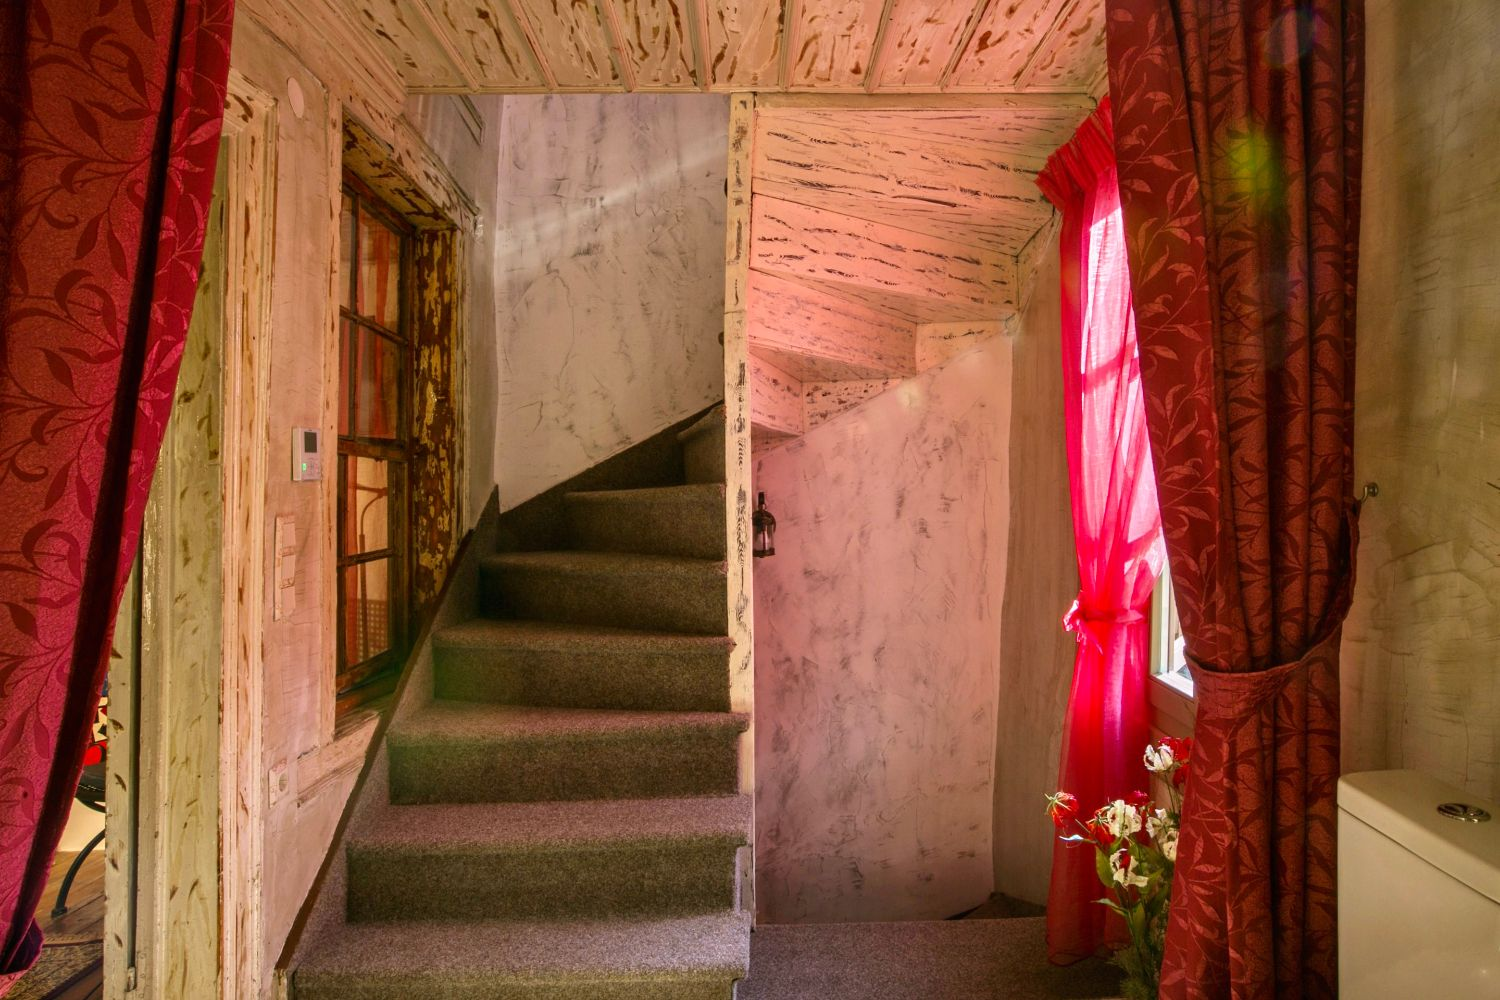 Ottoman Grande: Connecting Stairs